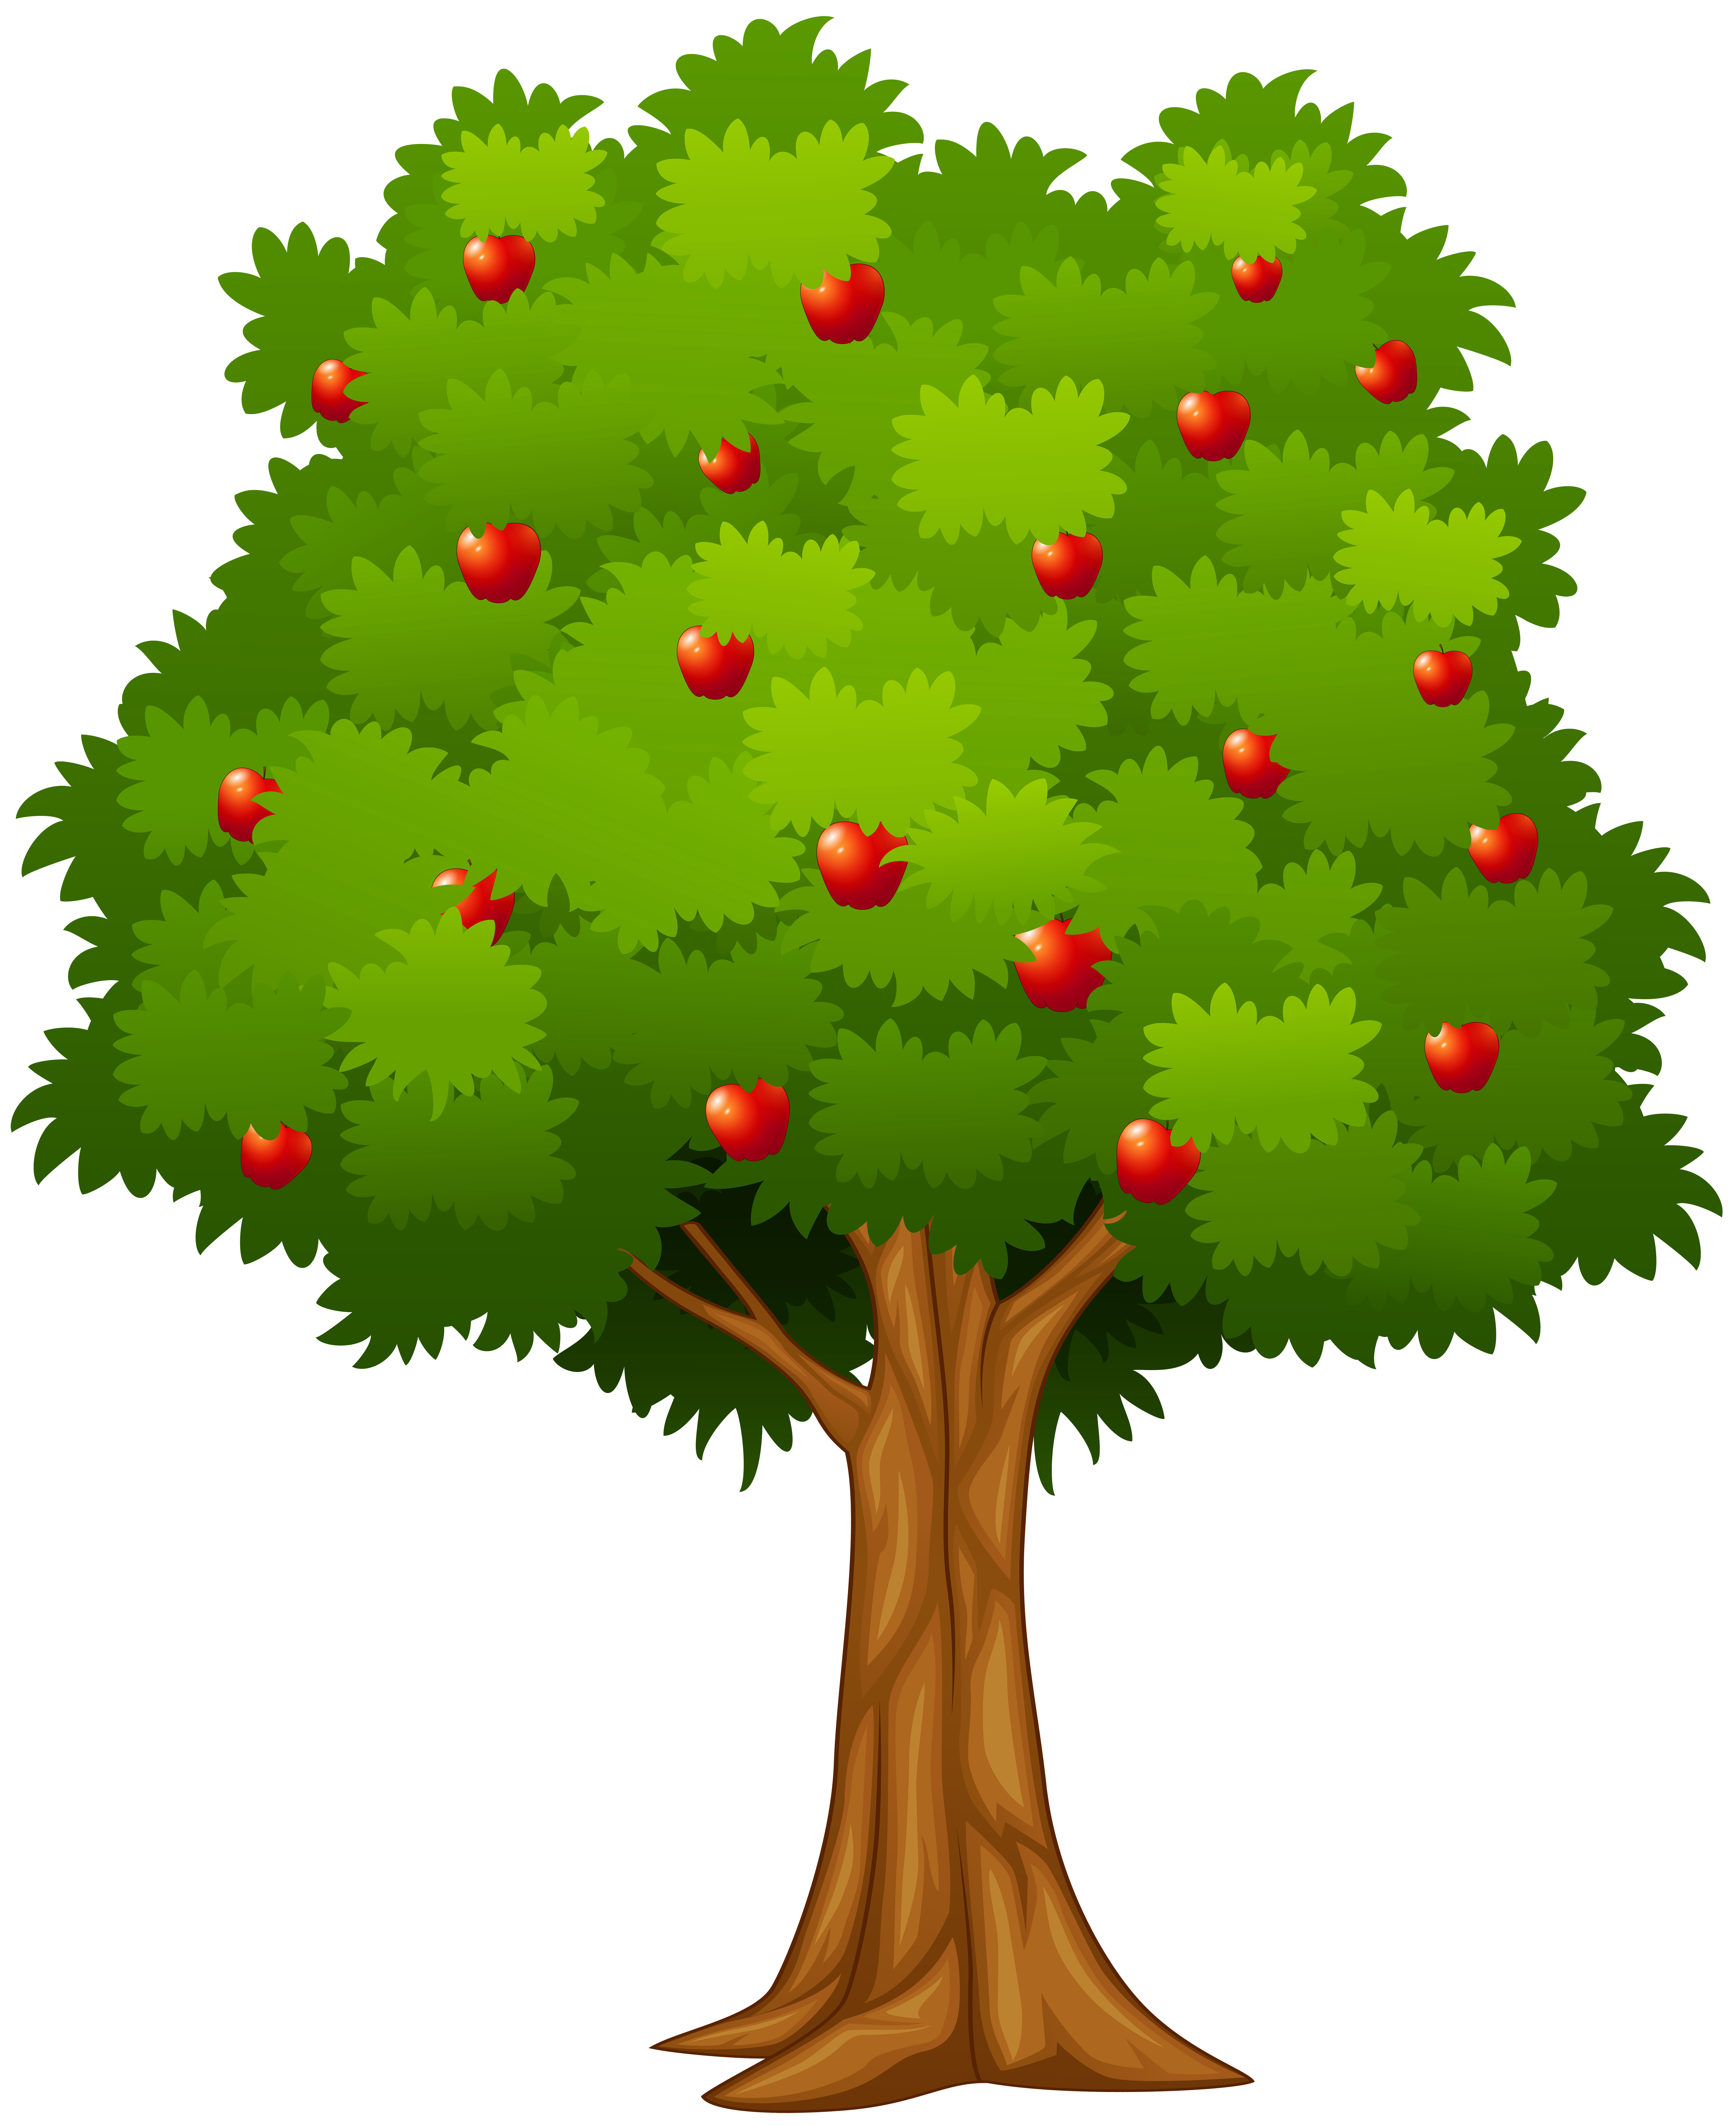 Apple trees clipart banner freeuse stock Apple Tree PNG Clip Art Image | Gallery Yopriceville - High-Quality ... banner freeuse stock